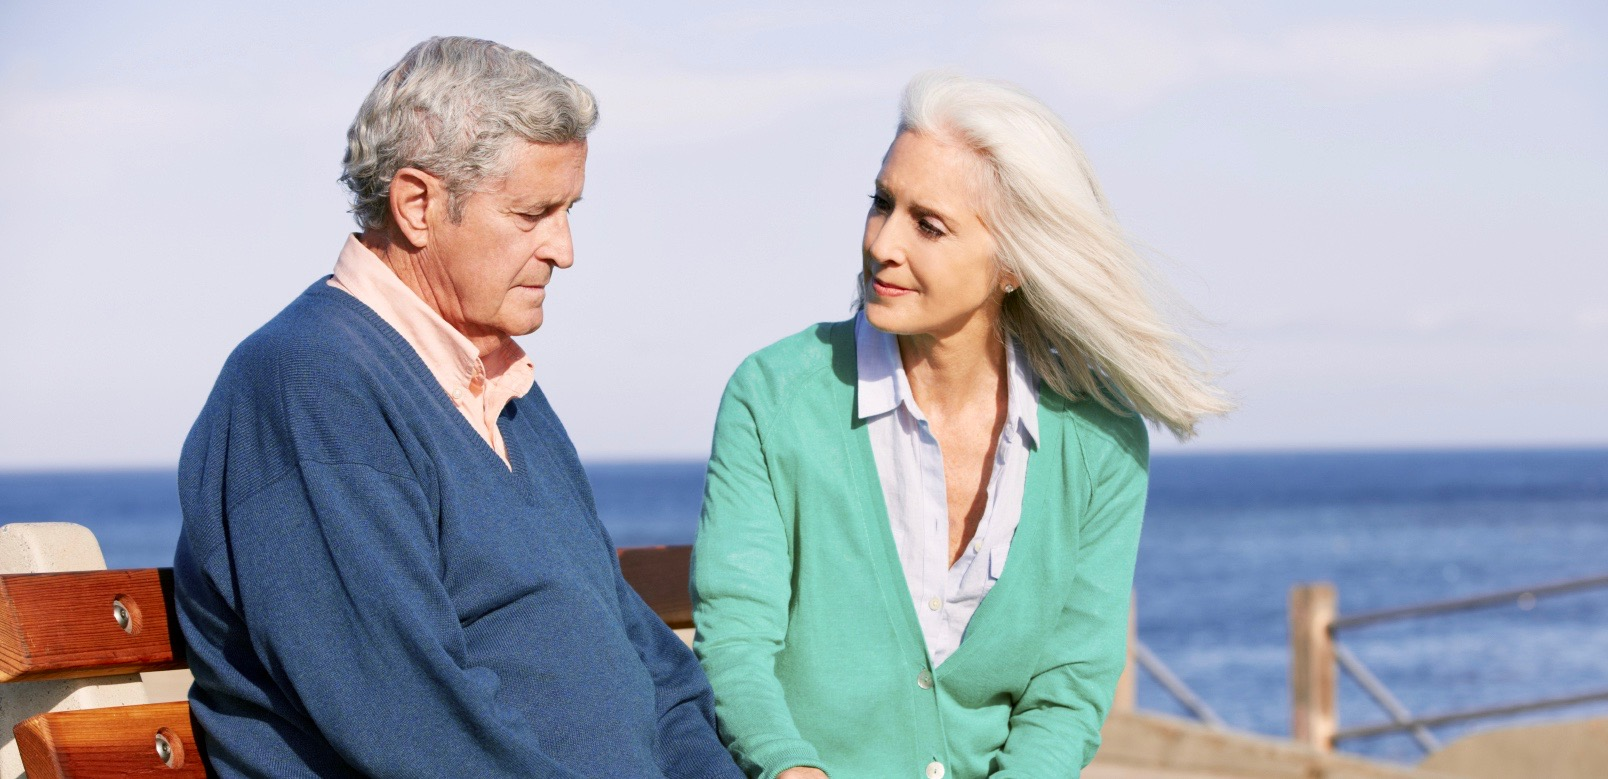 Older_man_with_woman_on_beach_LBD